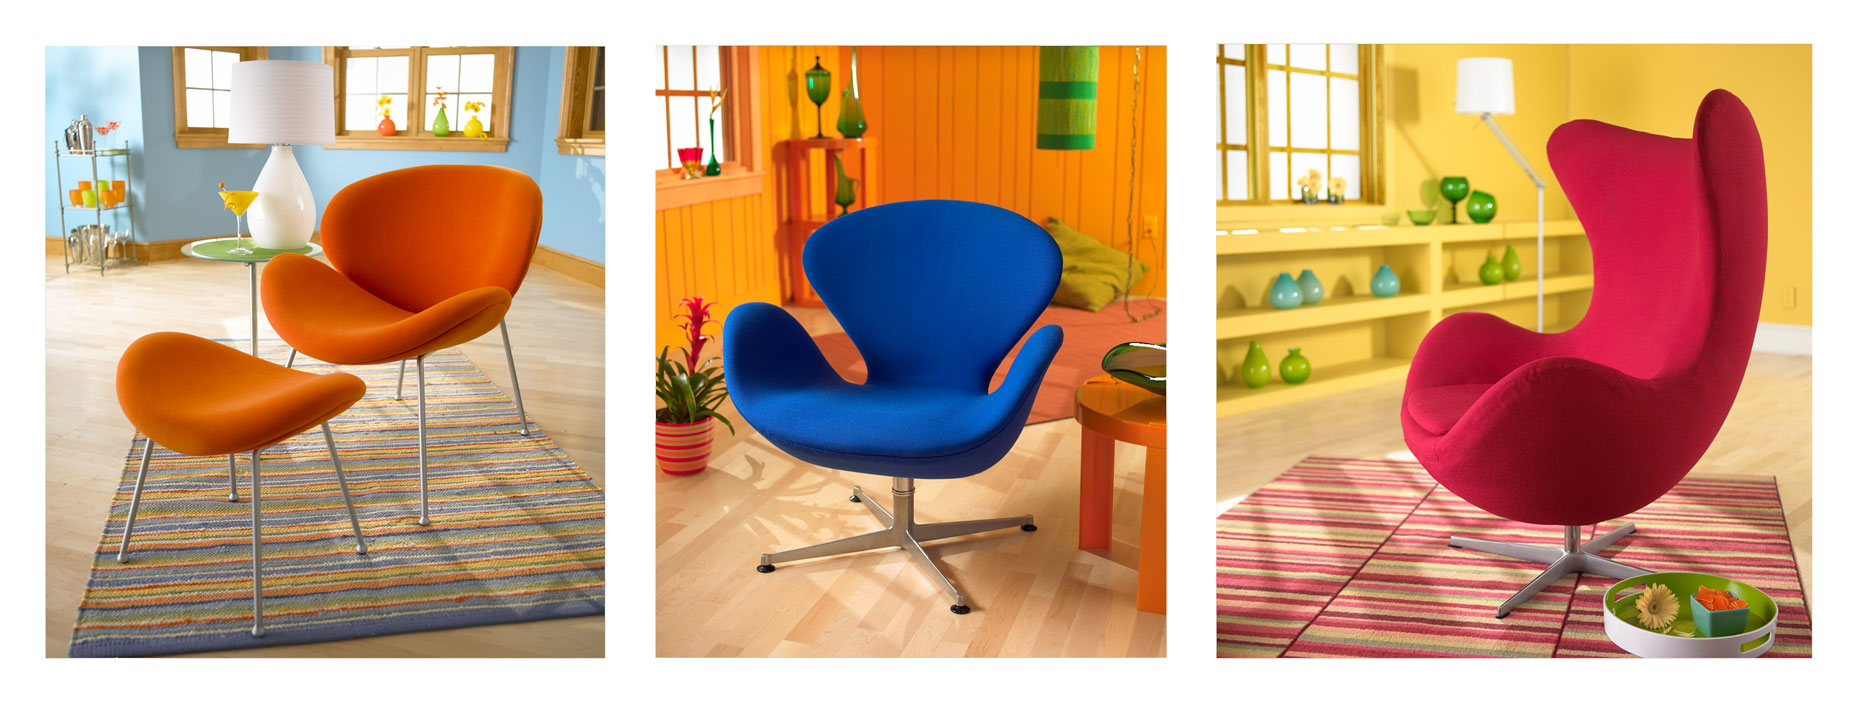 Chairs/multi color/studio sets/product photography